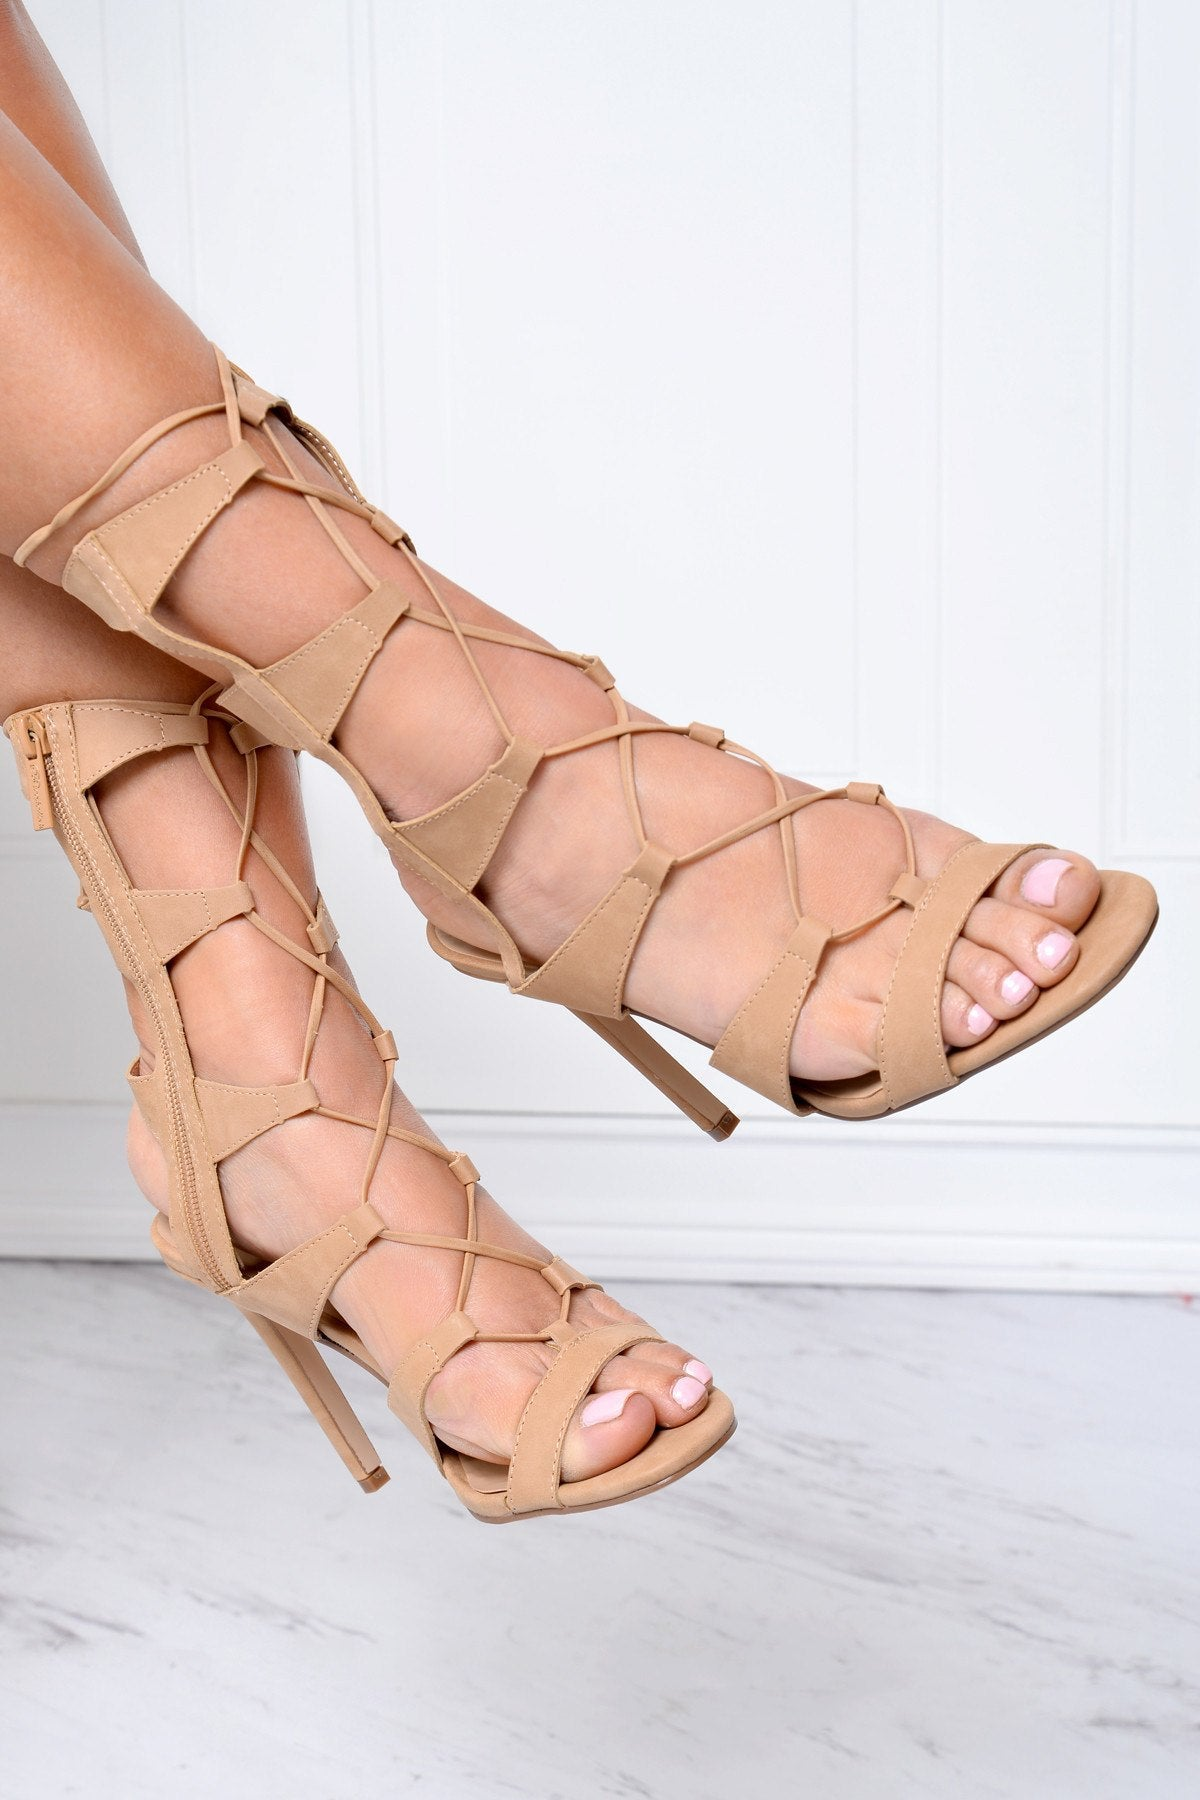 Euphoria Heels - Fashion Effect Store  - 2